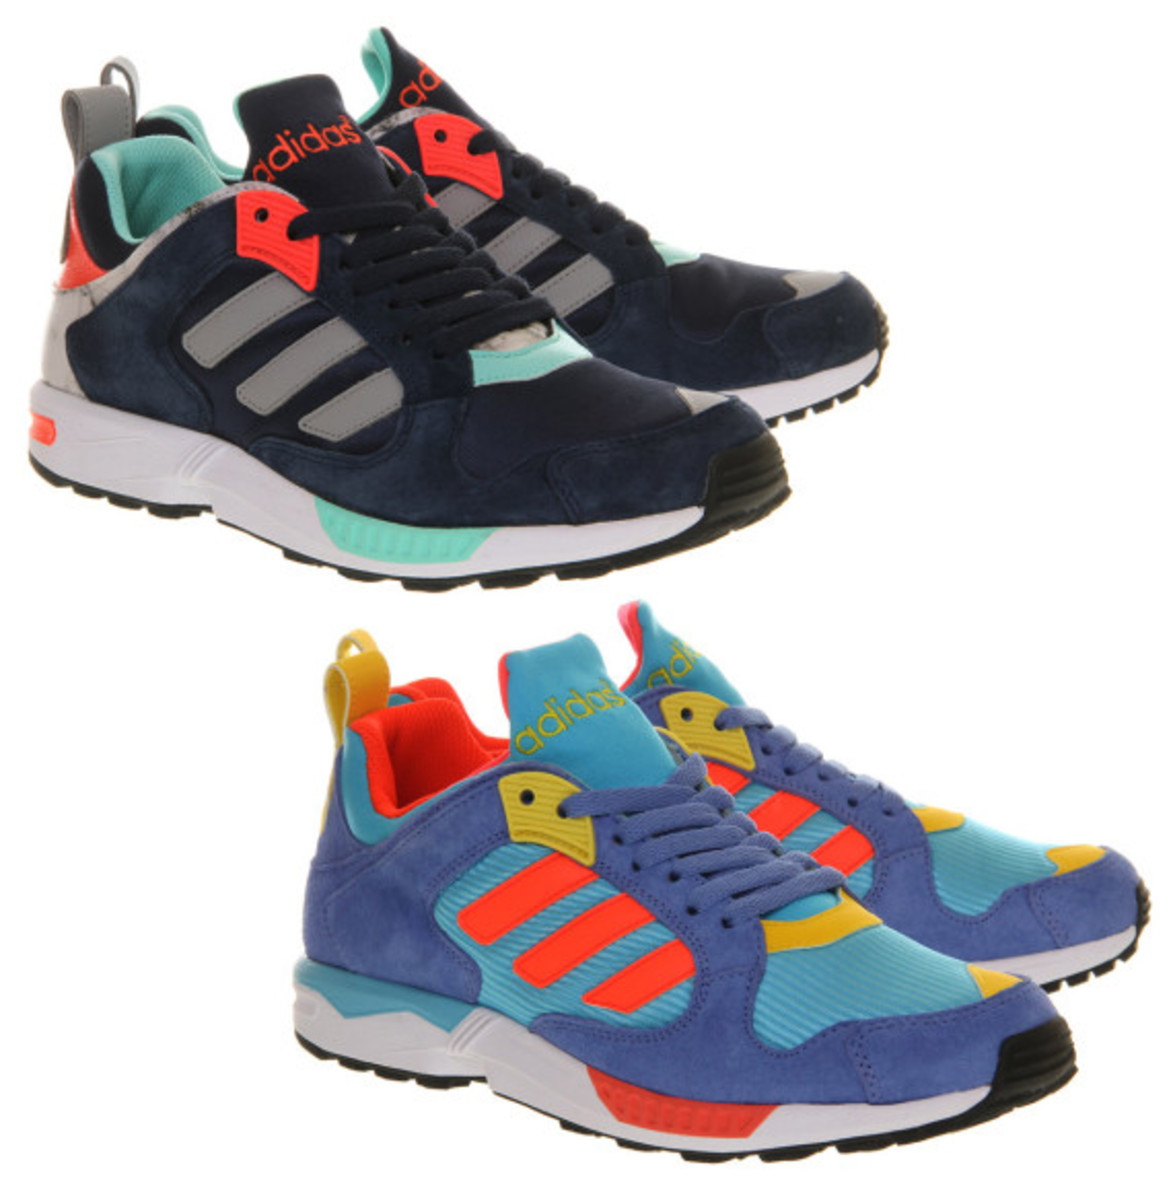 "brand new 067db 32ec5 OFFSPRING x adidas Originals ZX 5000 Response – ""Retro vs ..."